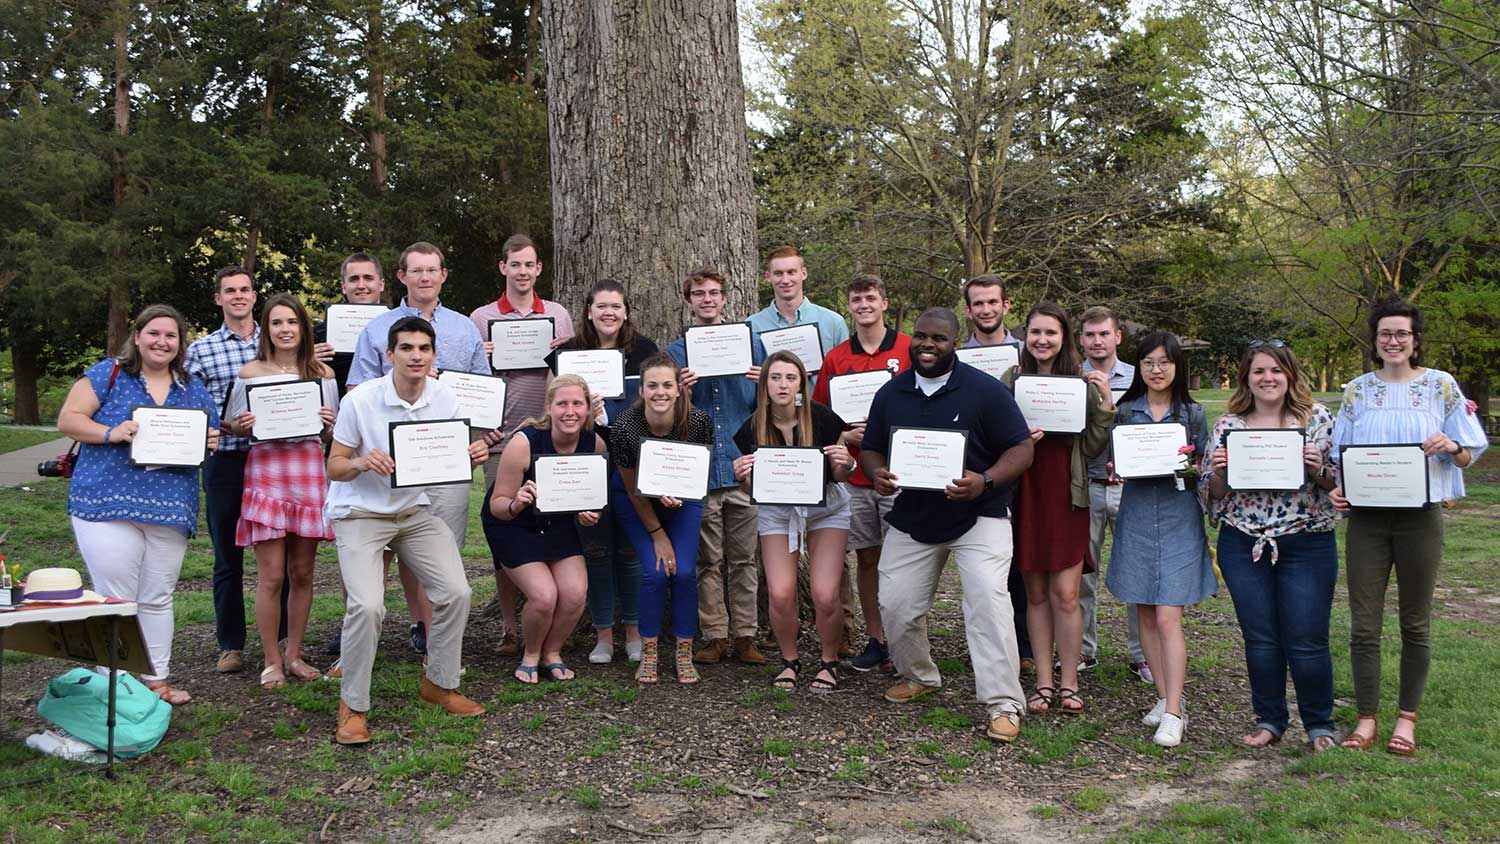 Student Scholars and Awards - Scholarships - Parks Recreation and Tourism Management NC State